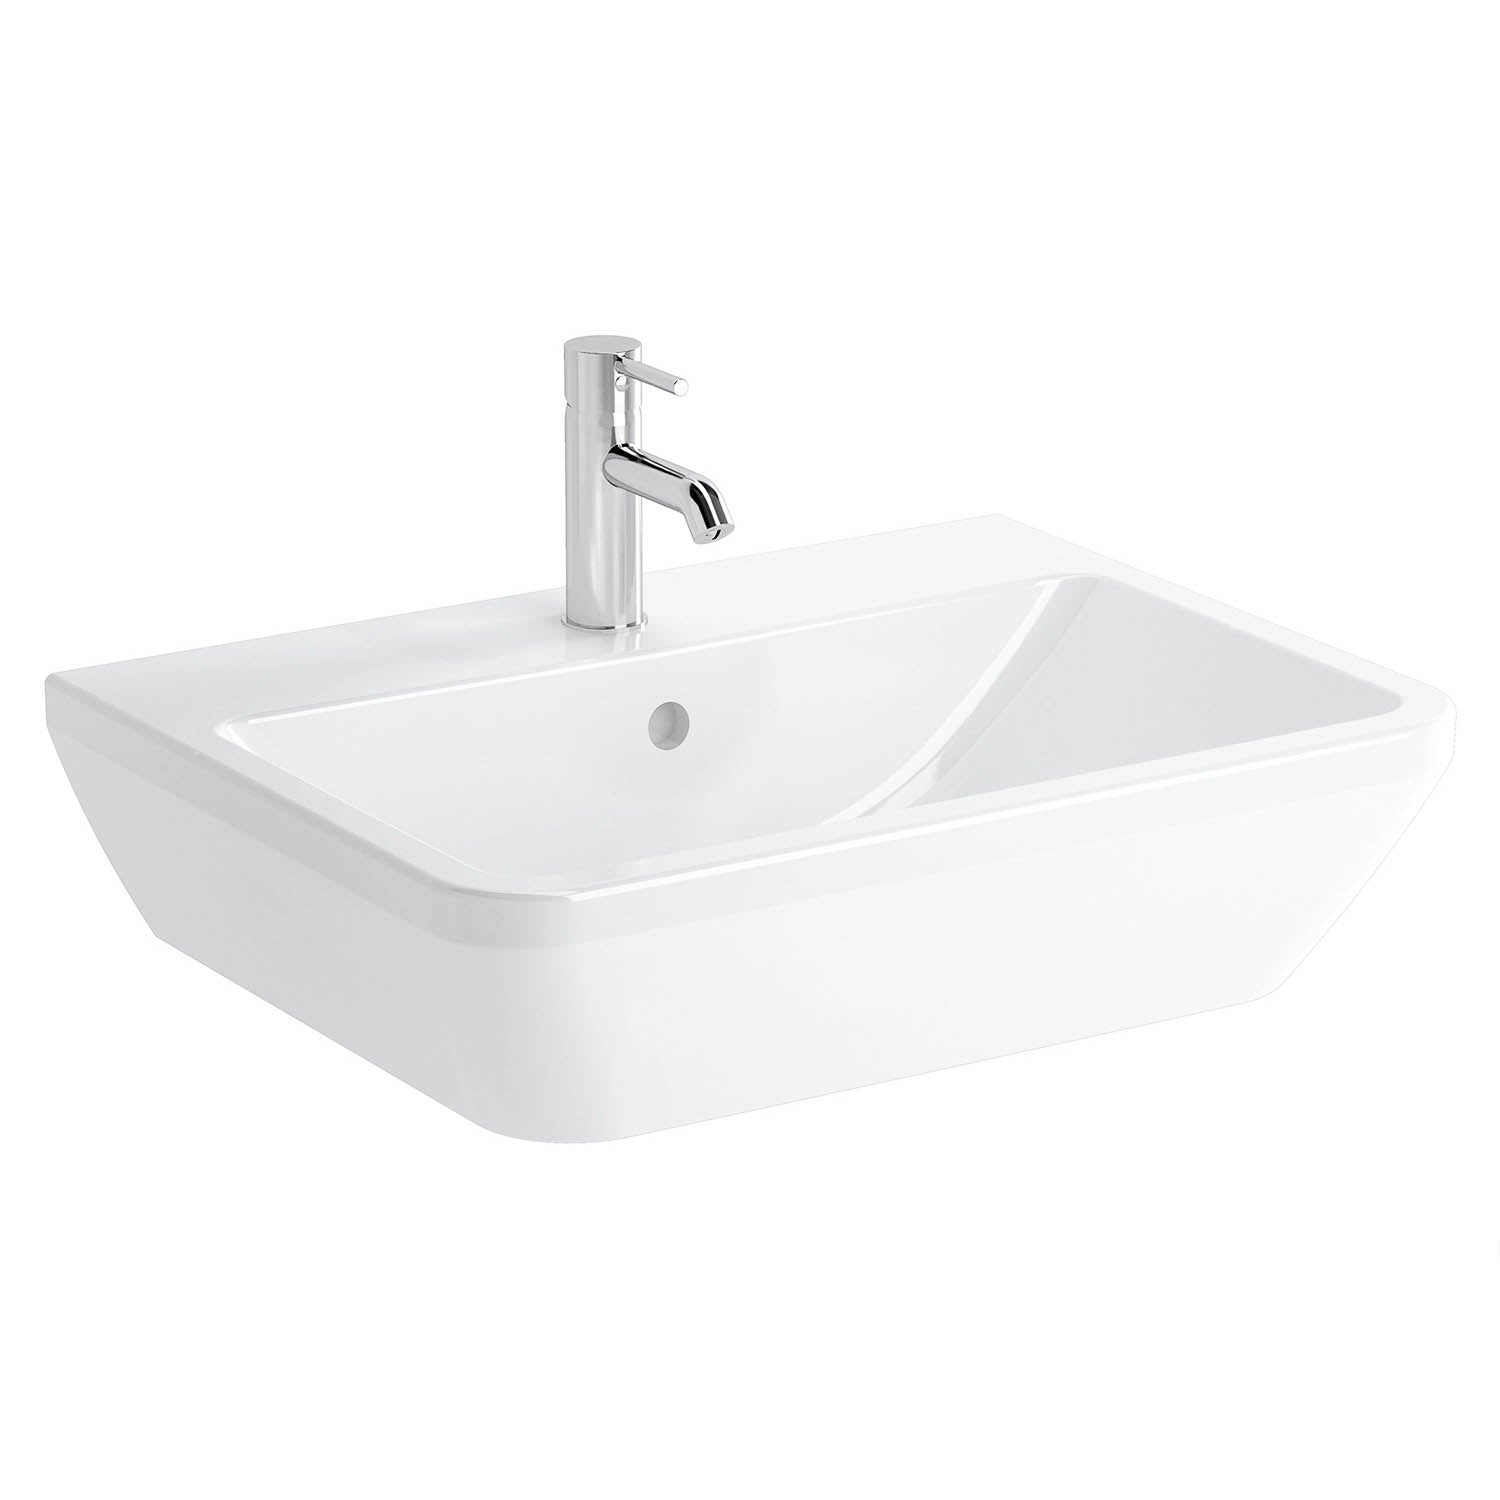 650mm Consilio Wall Hung Basin with one tap hole and an overflow on a white background